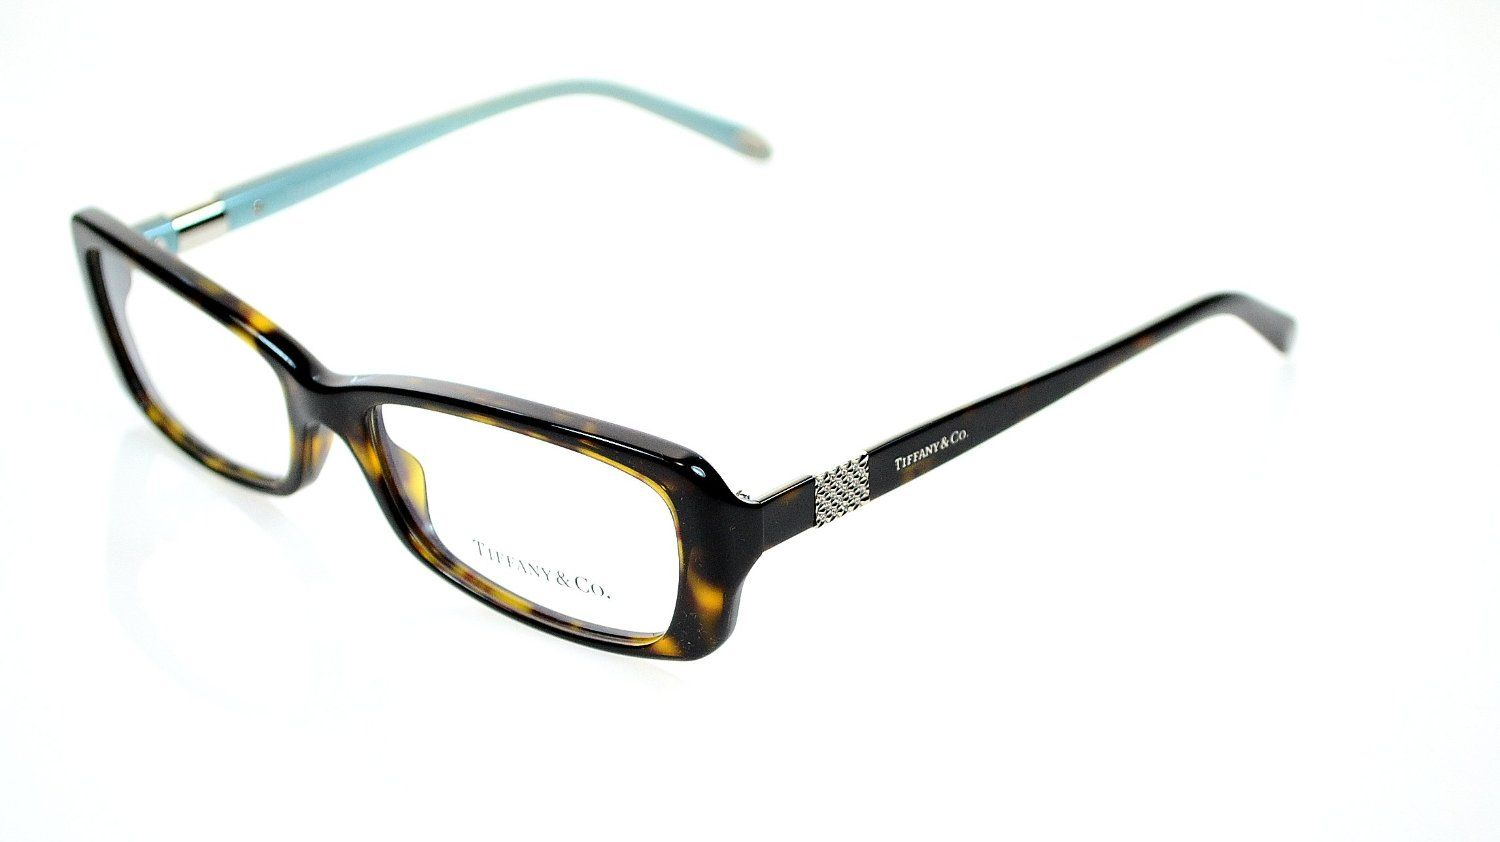 e819dd8f629 TIFFANY Eyeglasses TF 2070B 8015 Havana 55MM